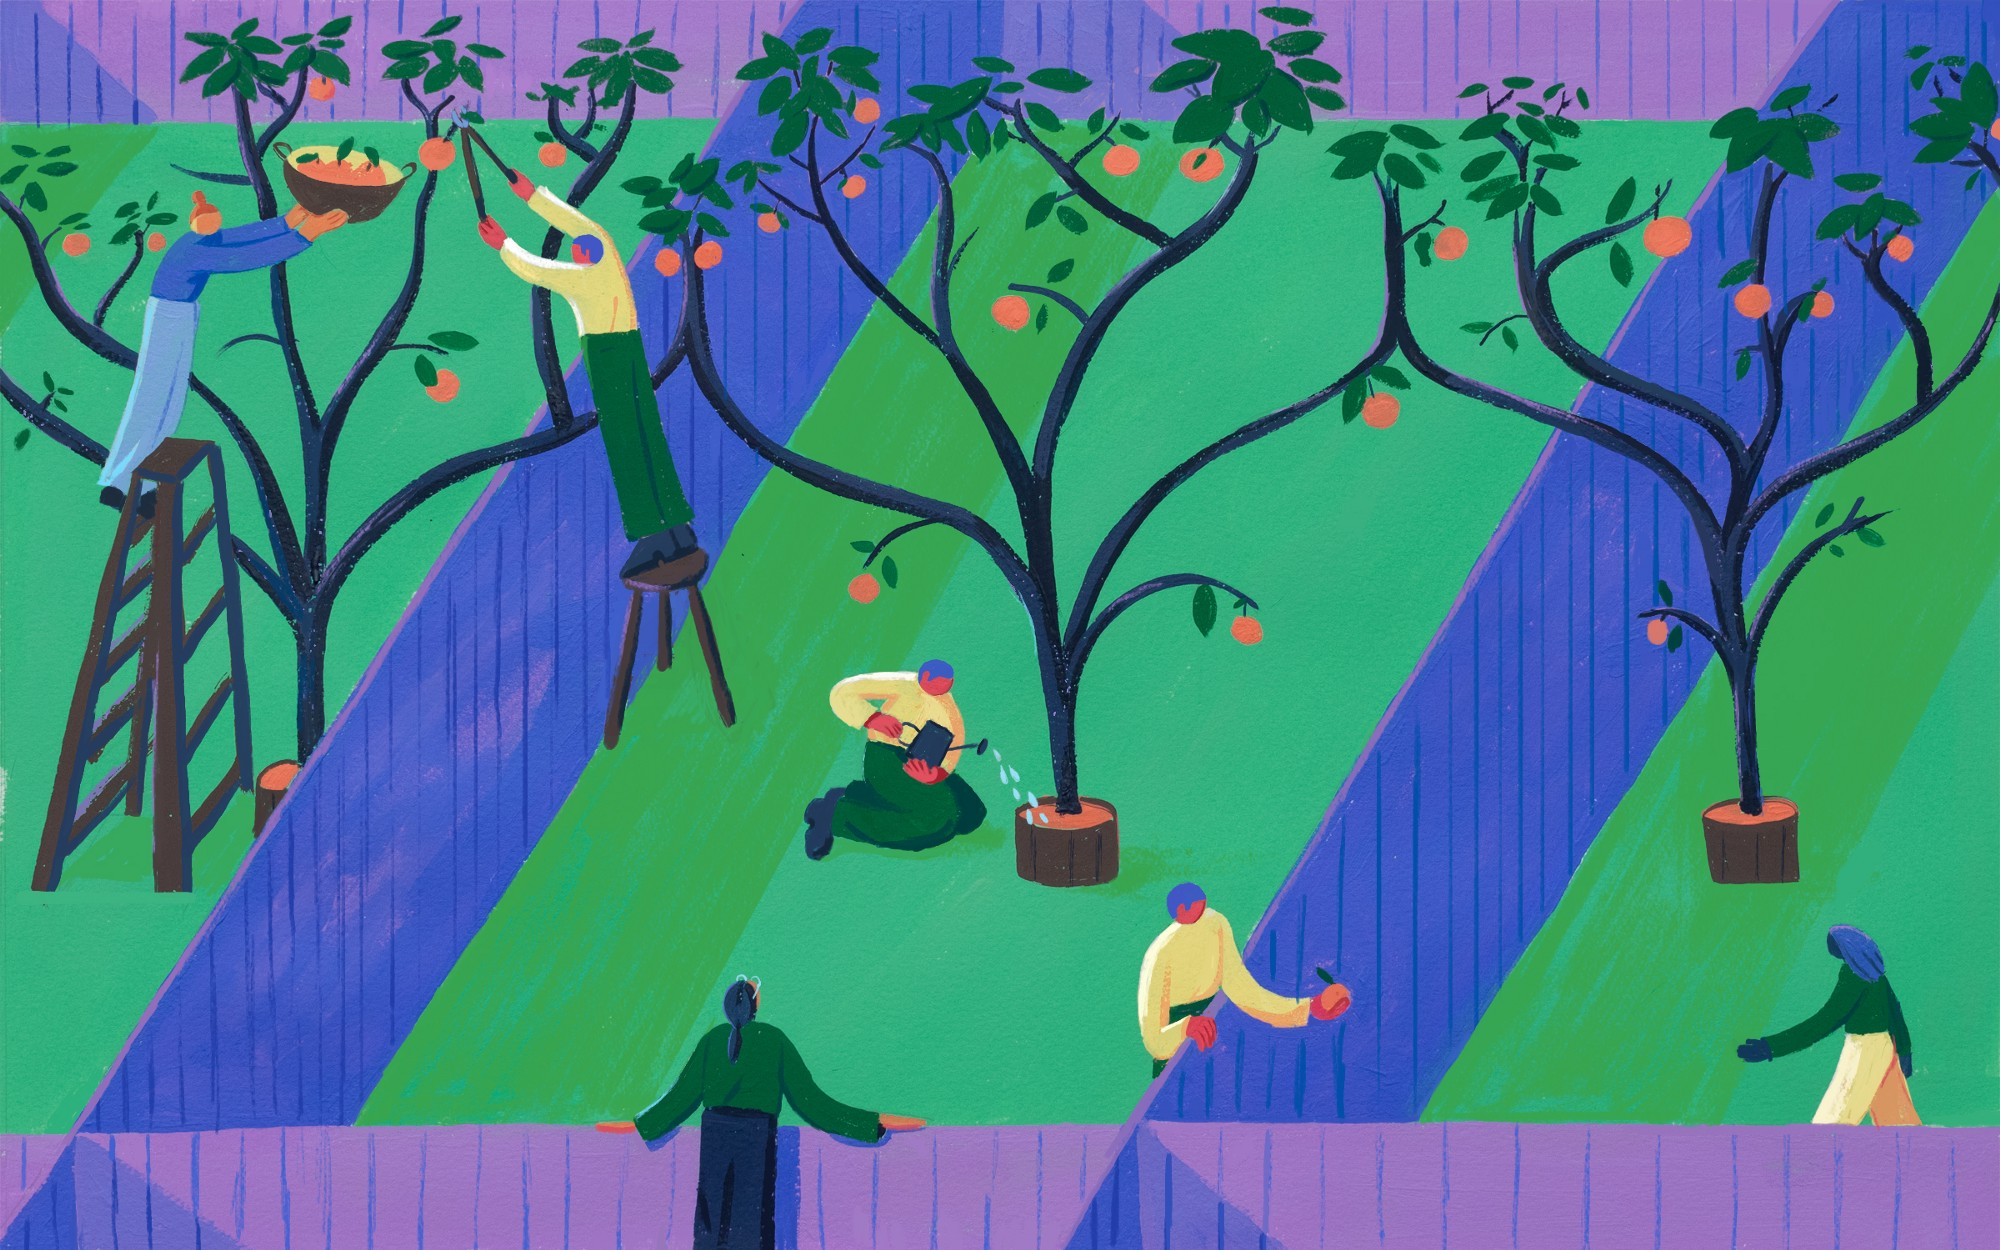 Colorful illustration of people harvesting from orchard yards.